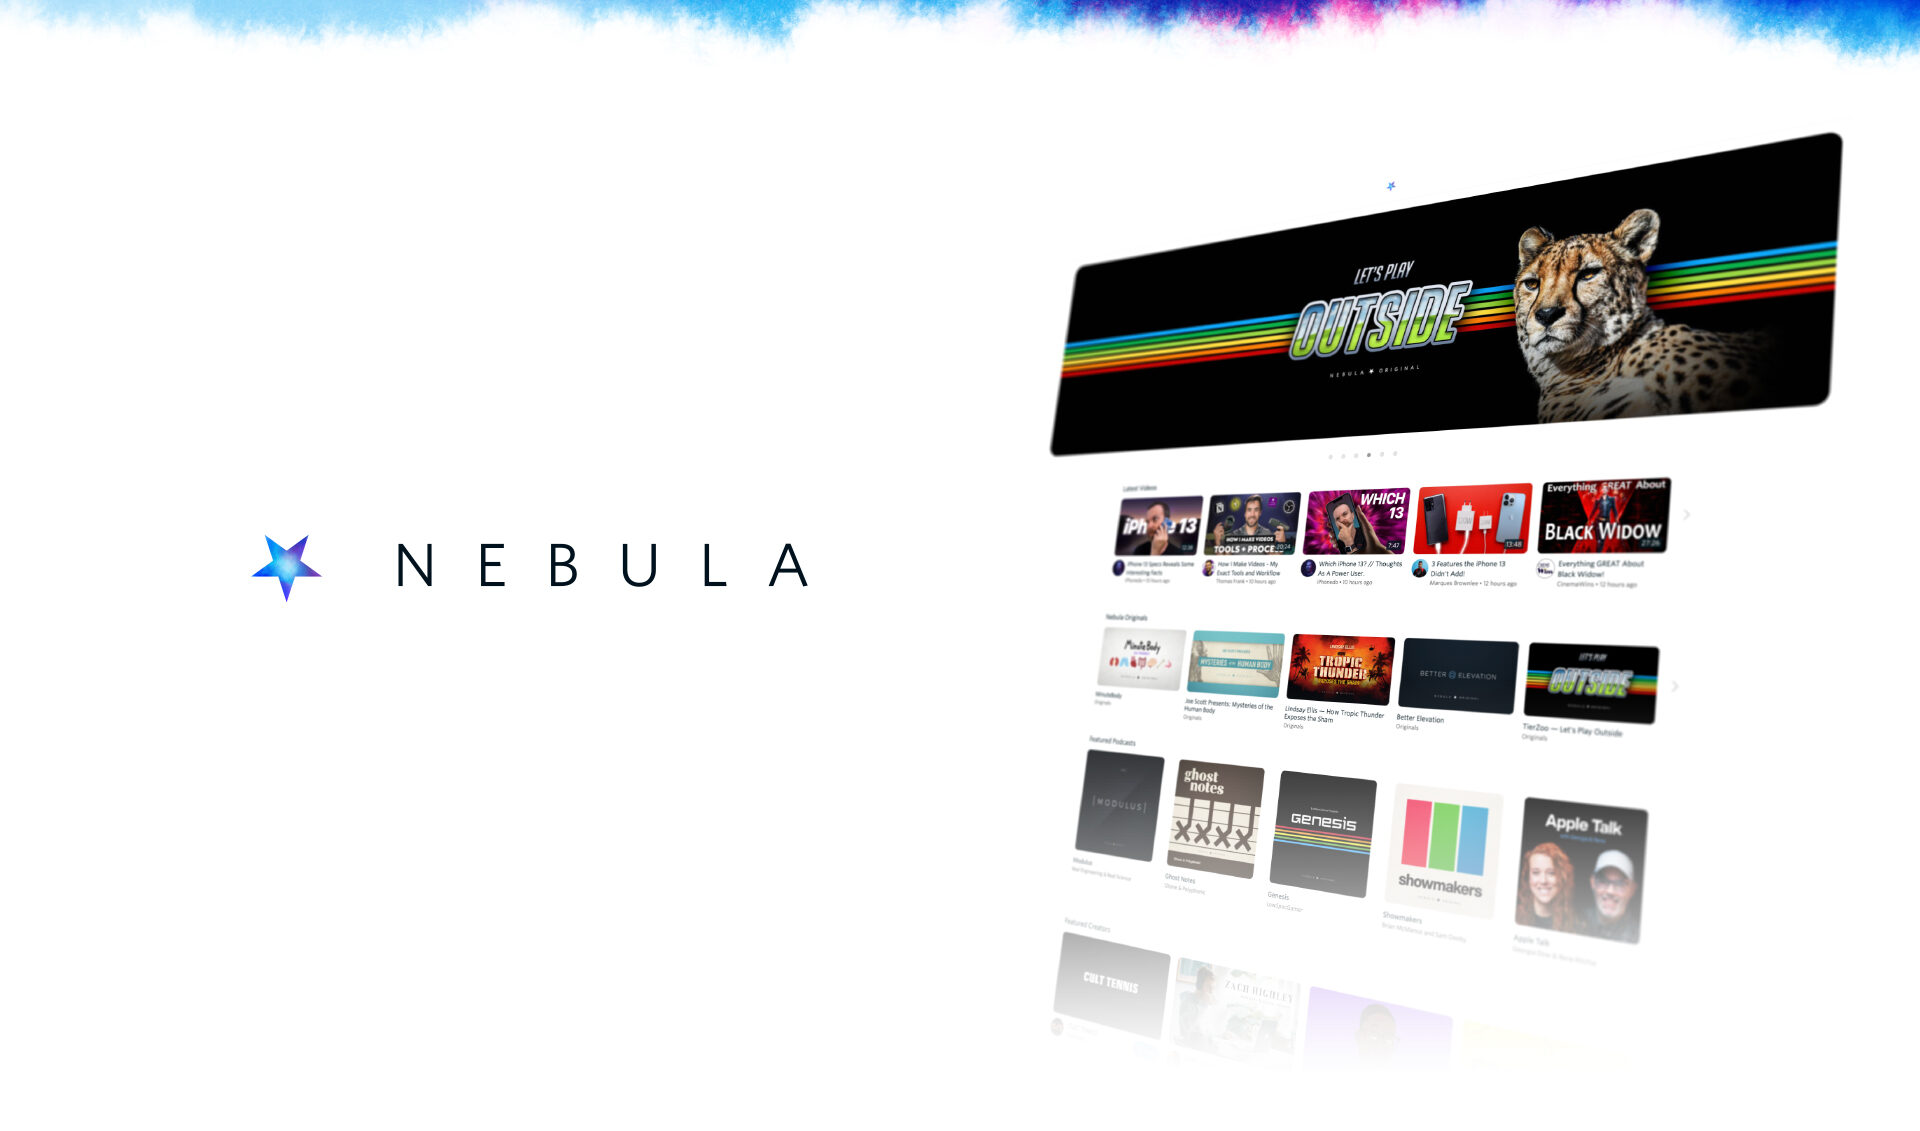 Creator-Owned Streaming Service Nebula Just Scored Its First Investment At A $50+ Million Valuation